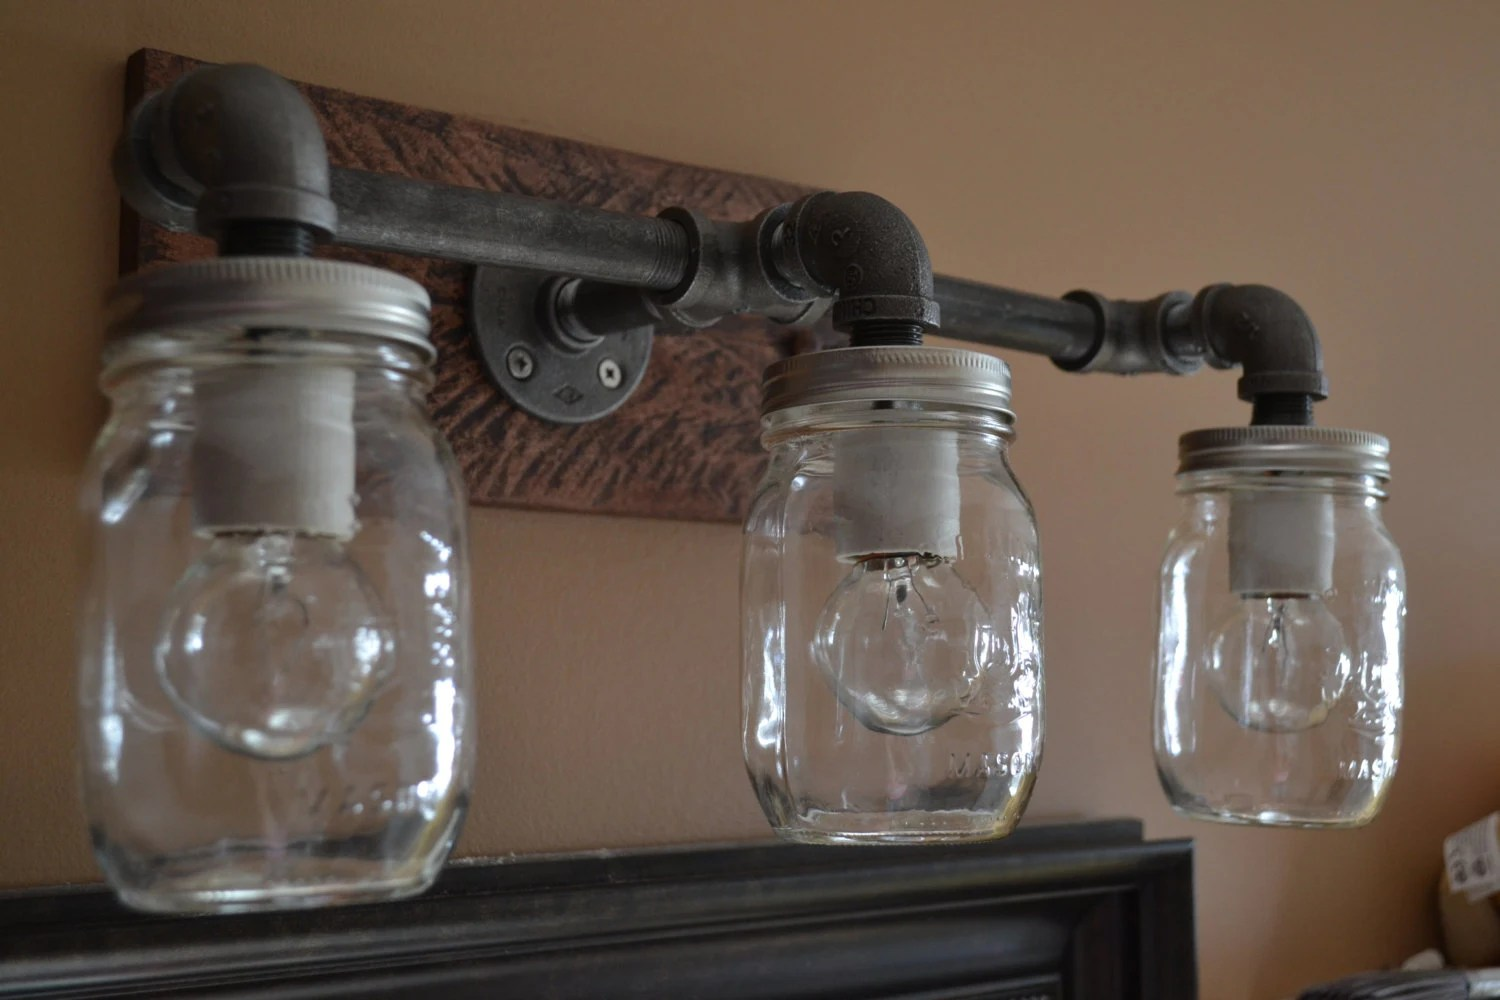 Mason Jar Bathroom Light Industrial Bathroom Vanity Mason Jar Light Vanity Lighting Bathroom Light